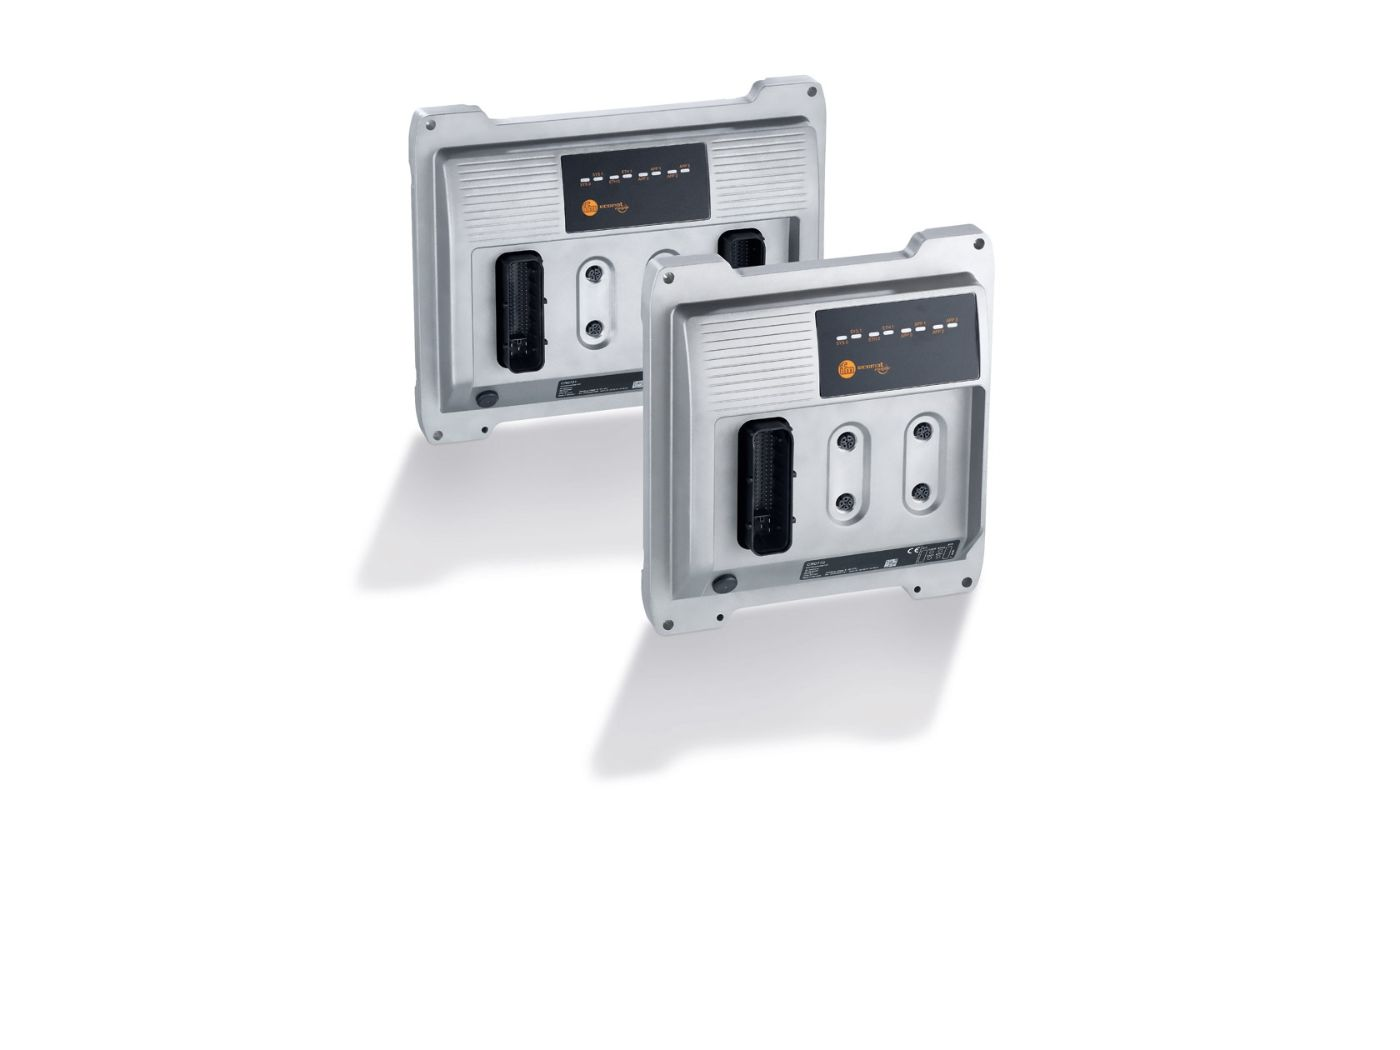 Standard and safety controller in one unit - ifm electronic